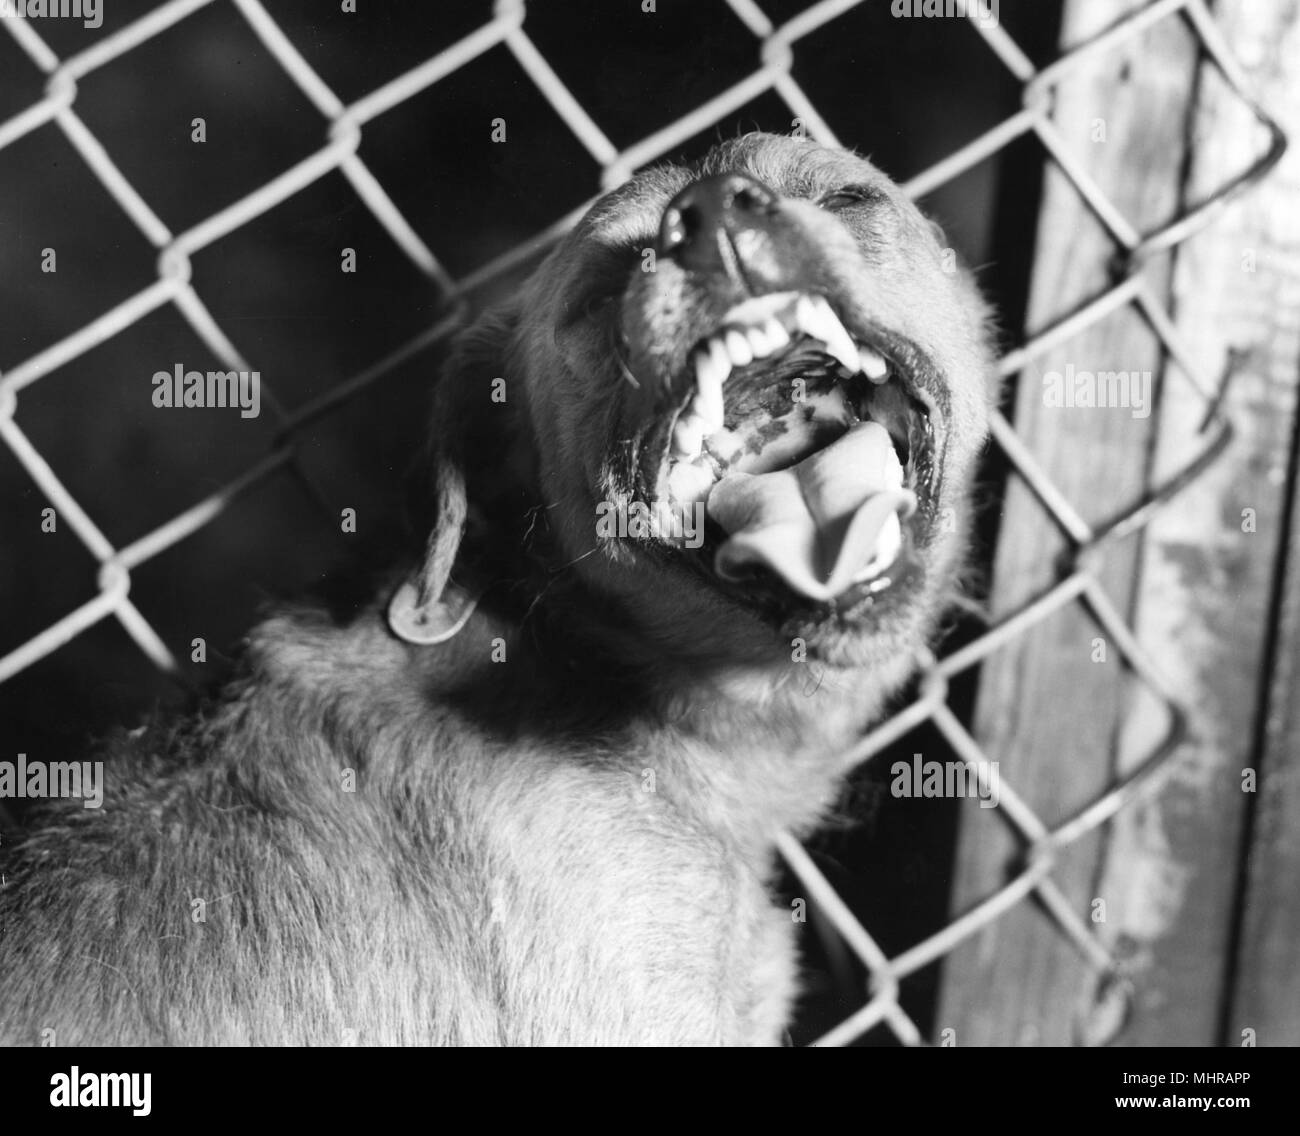 Aggressive behavior of a caged canine, suspected of being rabid, 1980. Image courtesy Centers for Disease Control (CDC). () - Stock Image